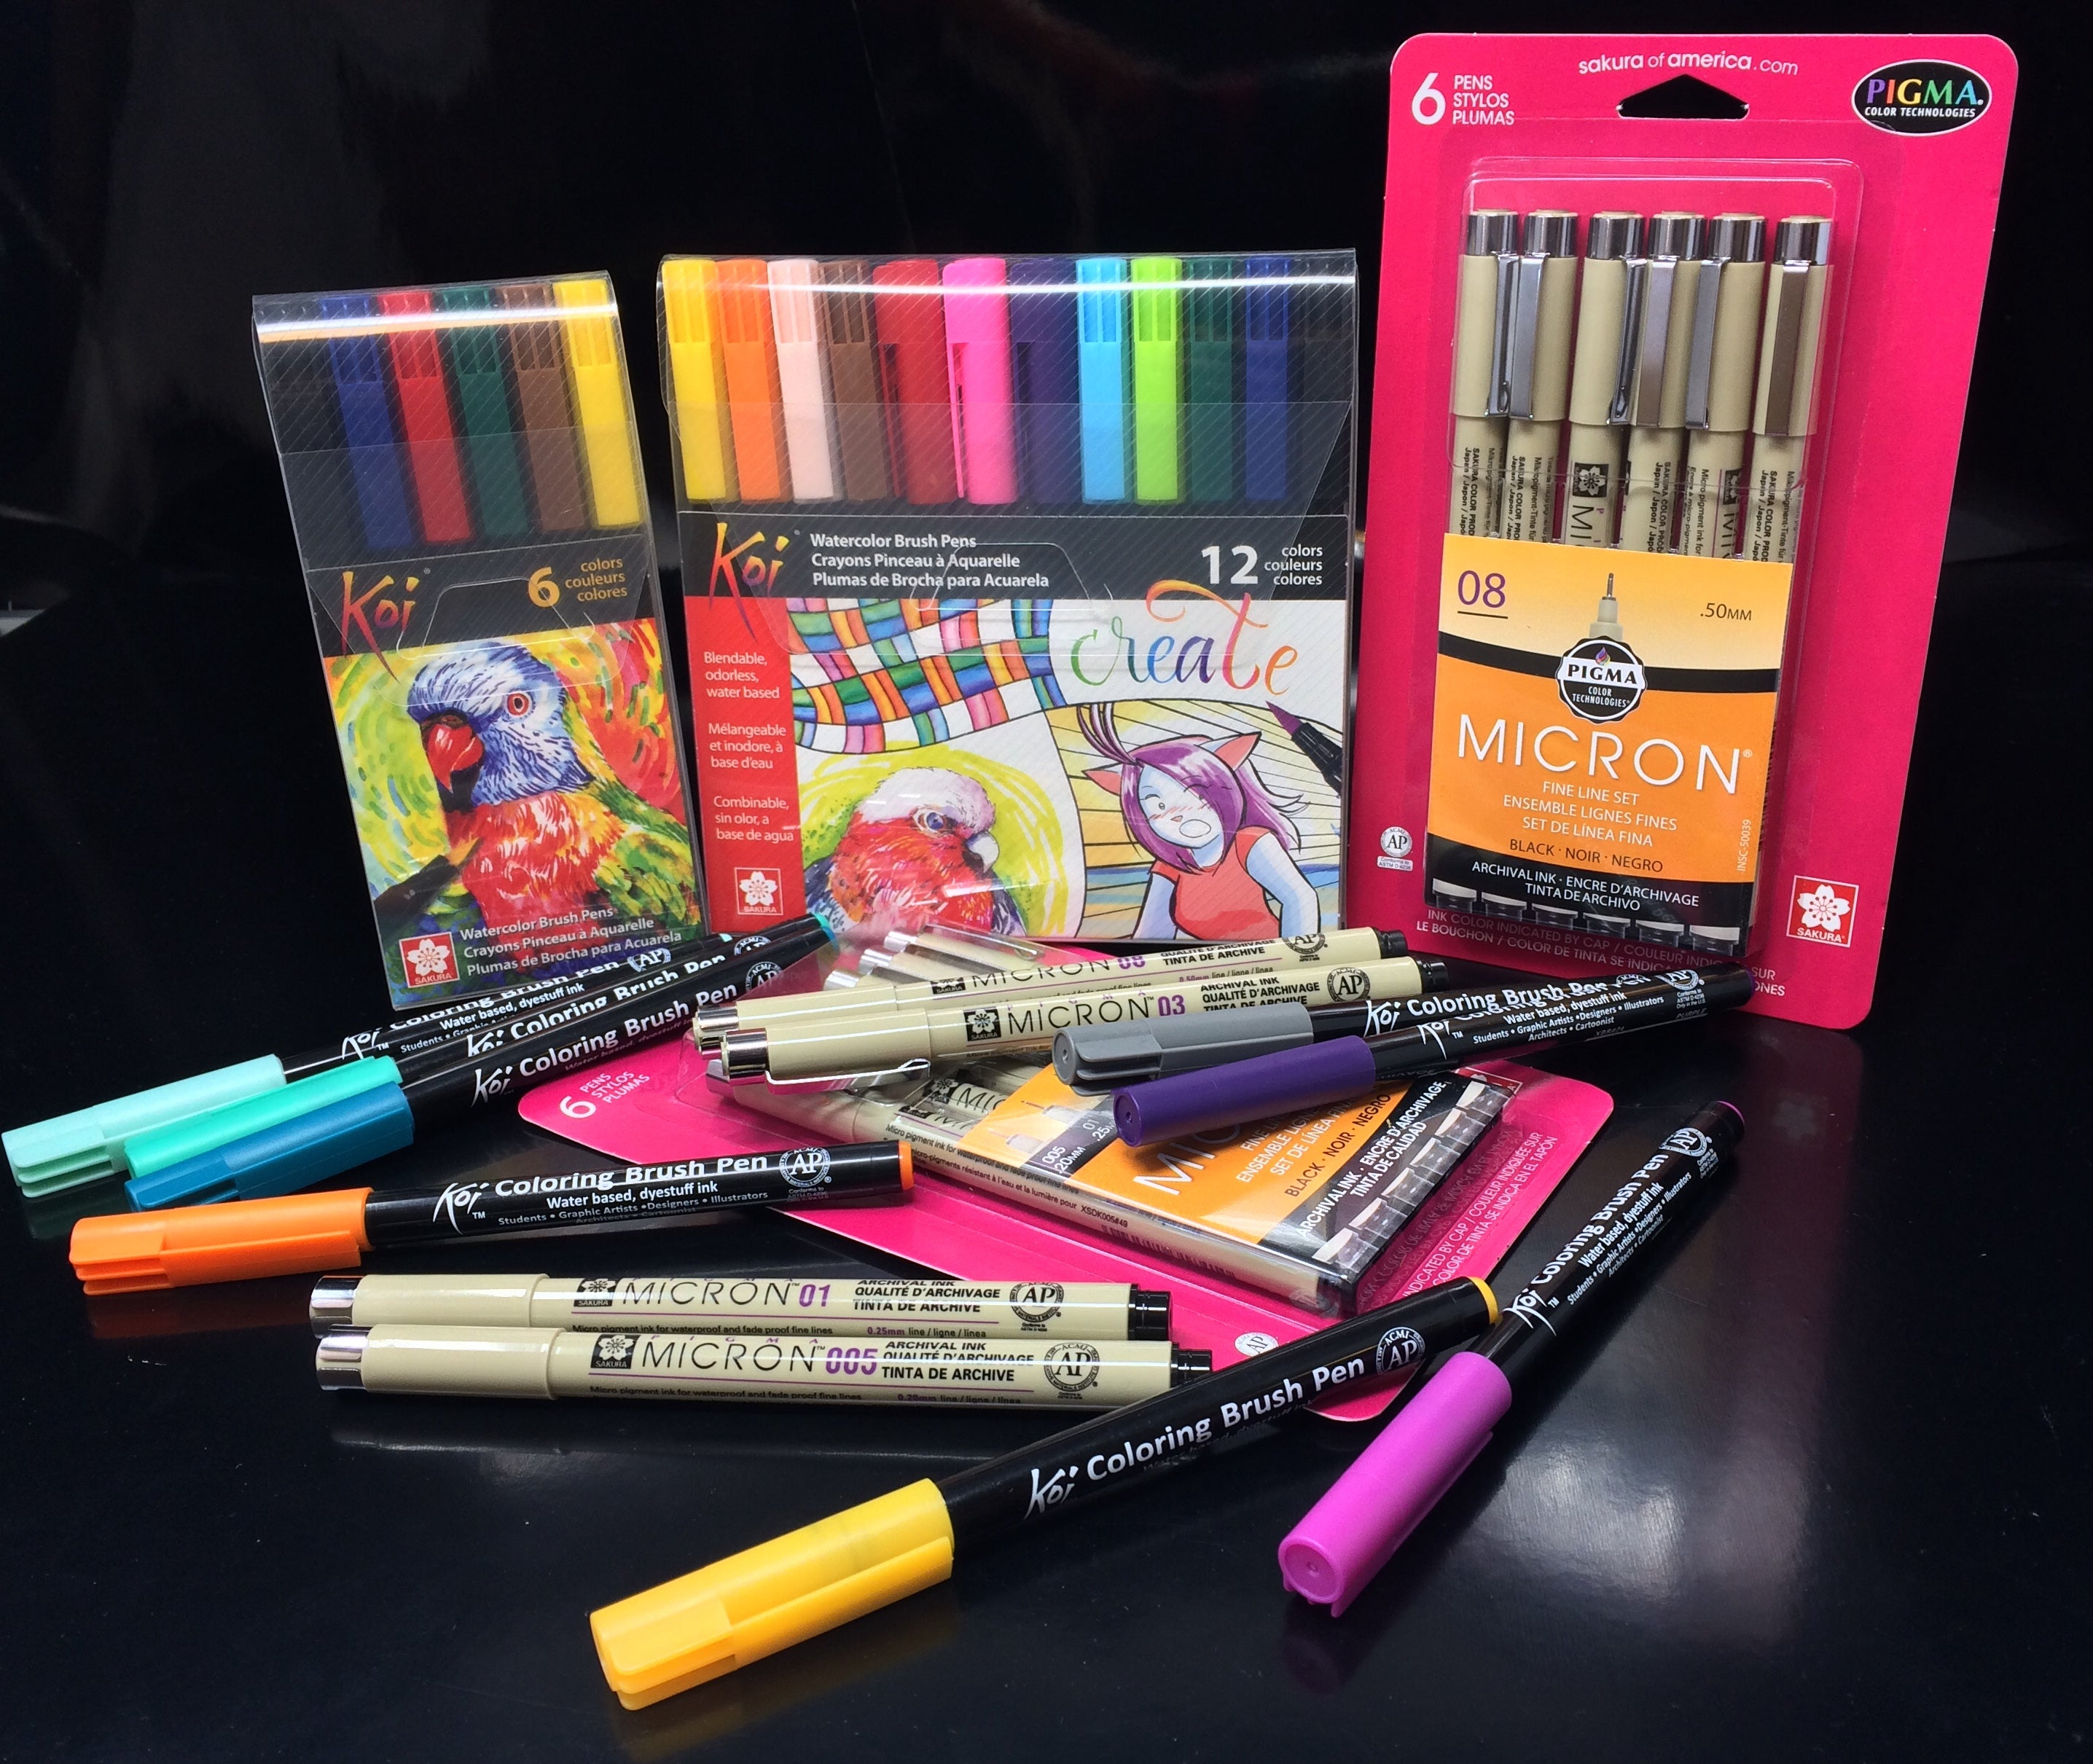 Spray Planet Review: Sakura KOI Coloring Brush Pens and PIGMA Micron Markers